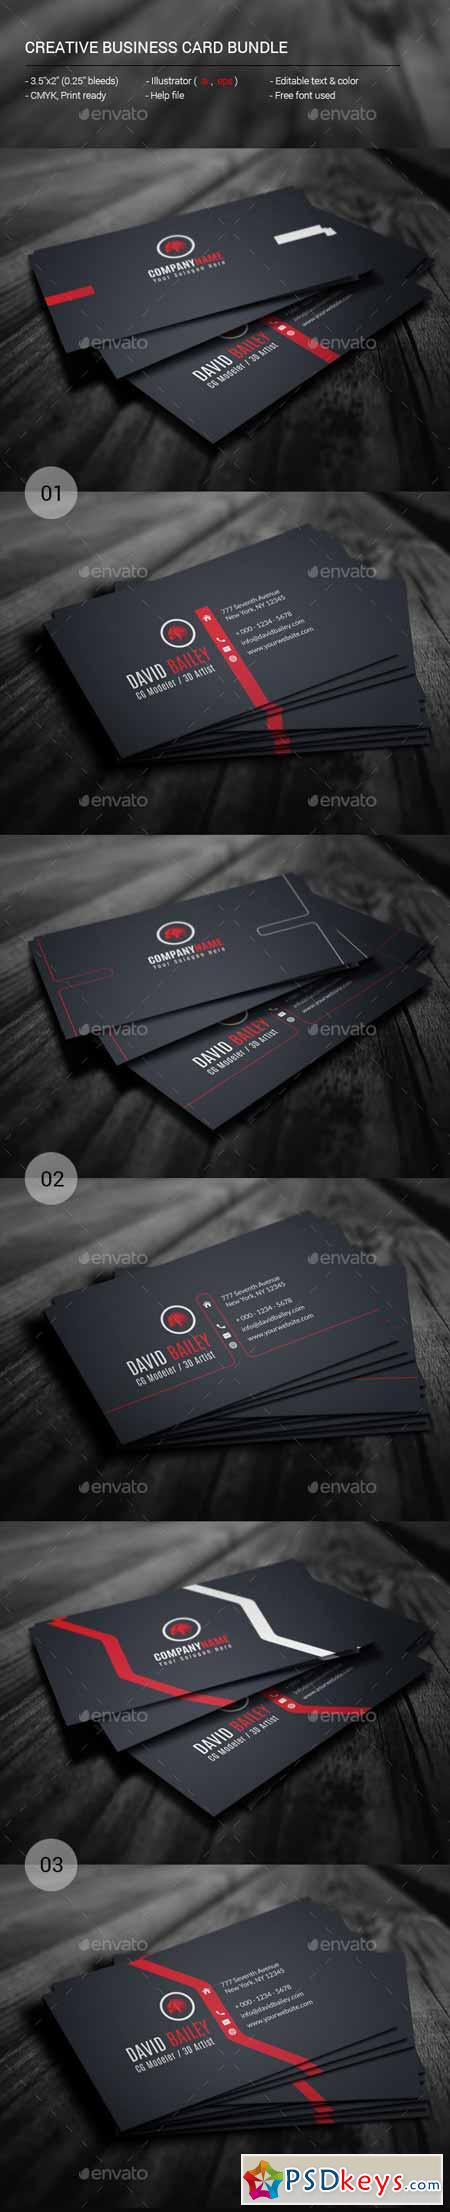 Creative business card bundle 11364589 free download photoshop creative business card bundle 11364589 reheart Images